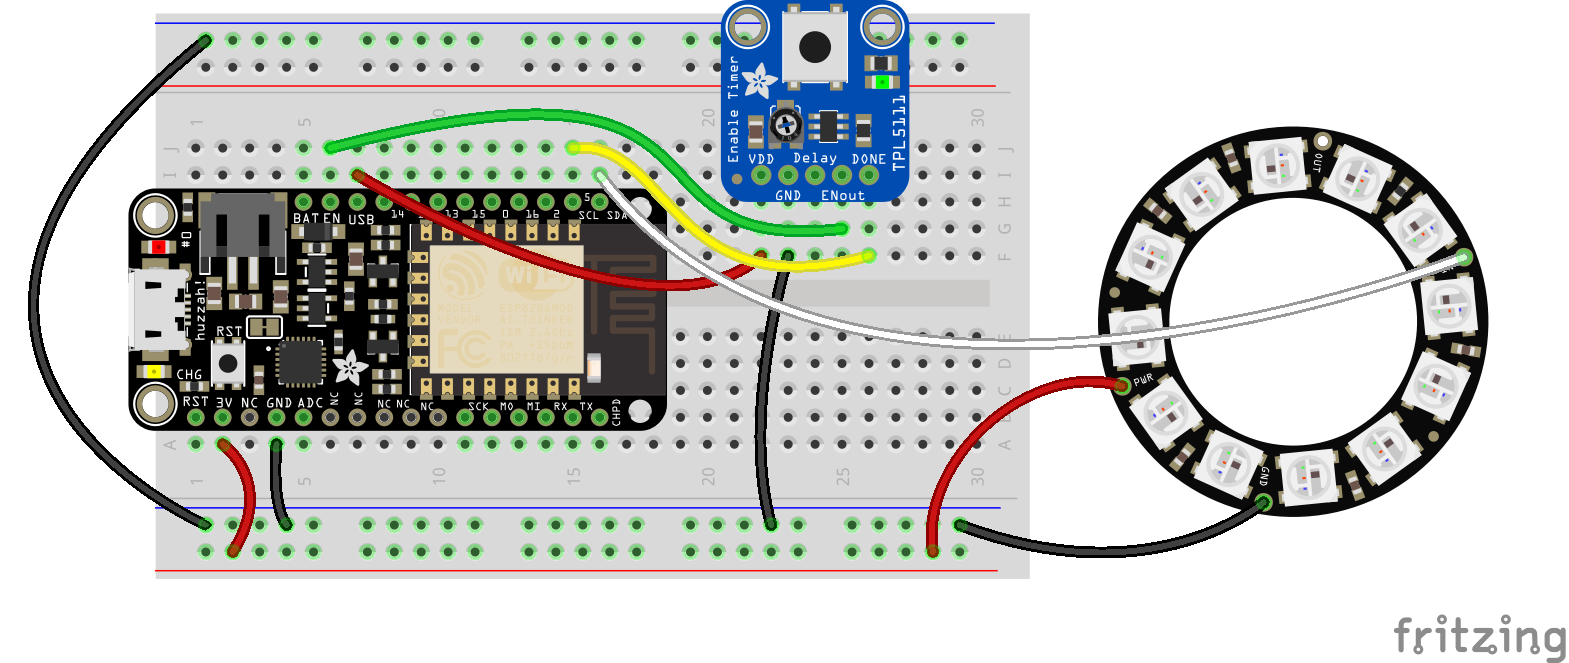 adafruit_products_tpl_esp8266_bb.png